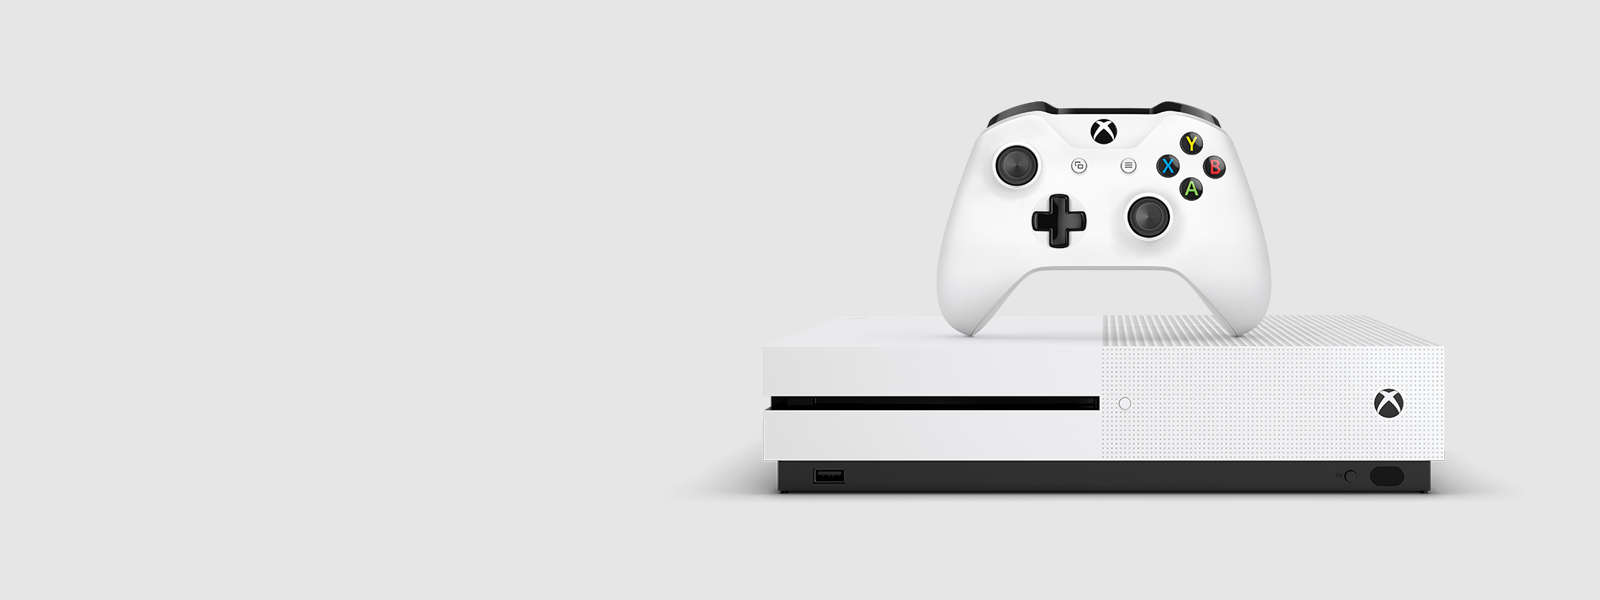 Xbox one s score a great deal on selected consoles and bundles